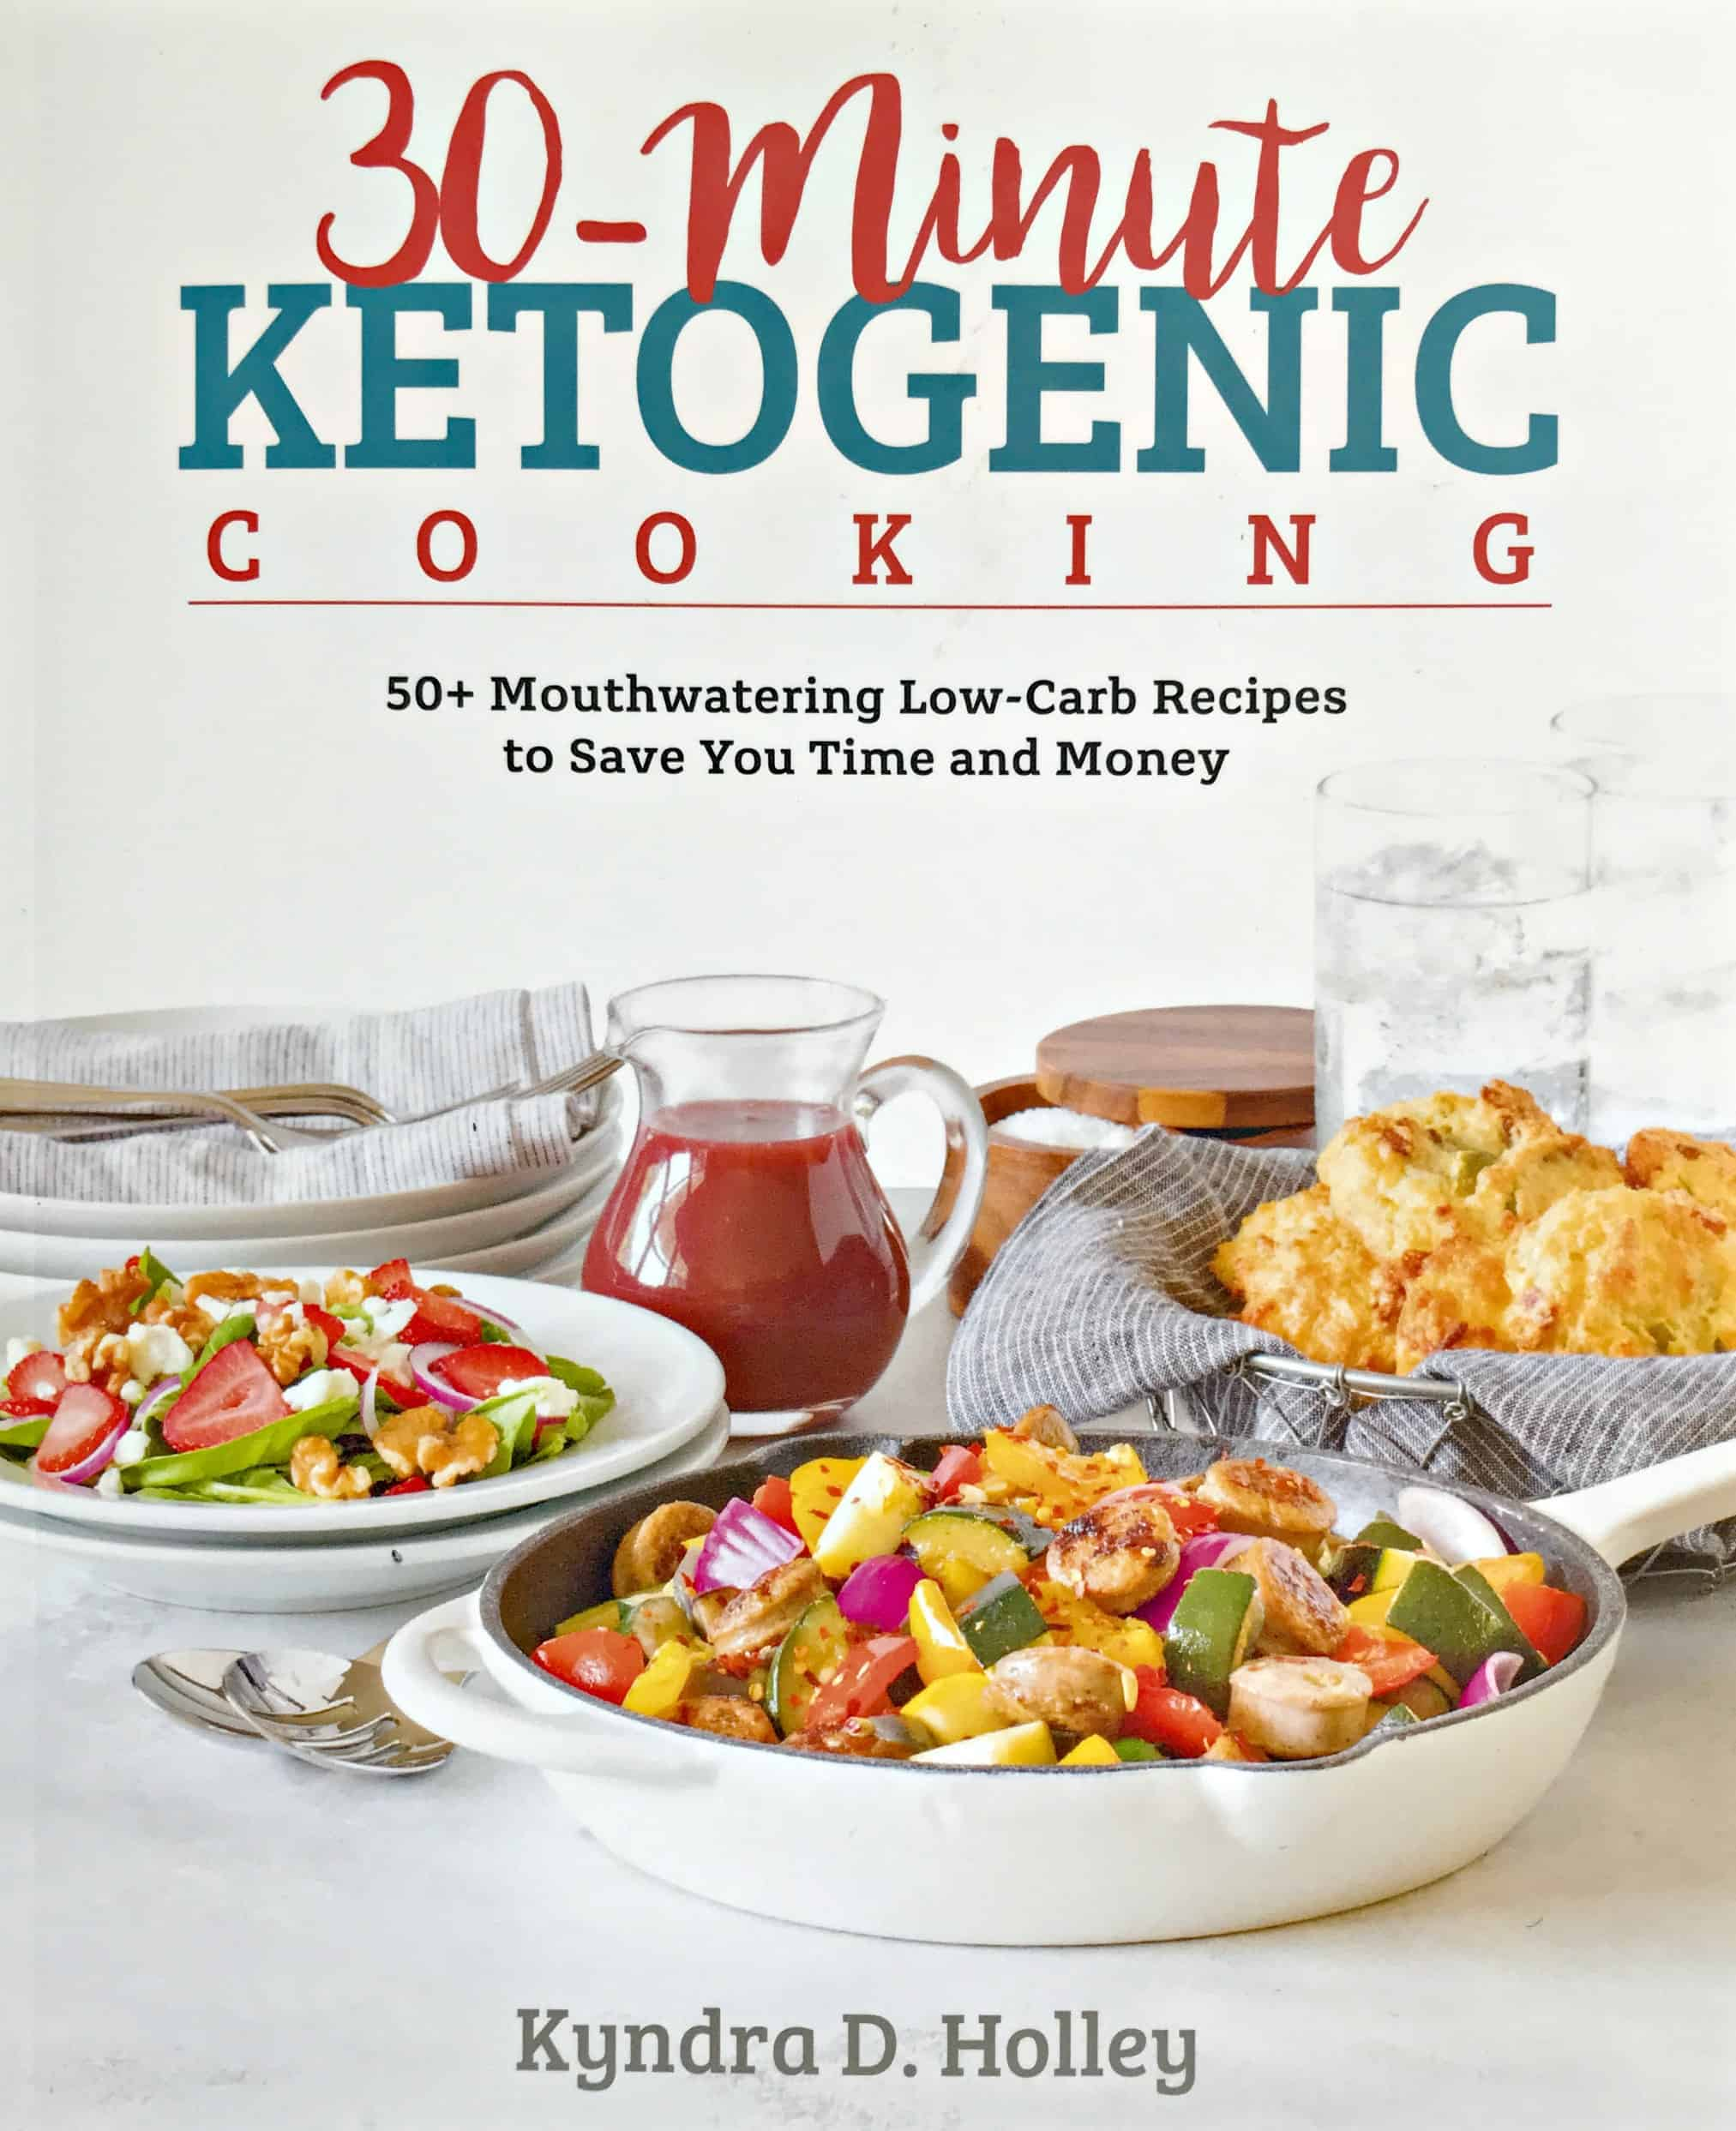 30-Minute Ketogenic Cooking cookbook cover